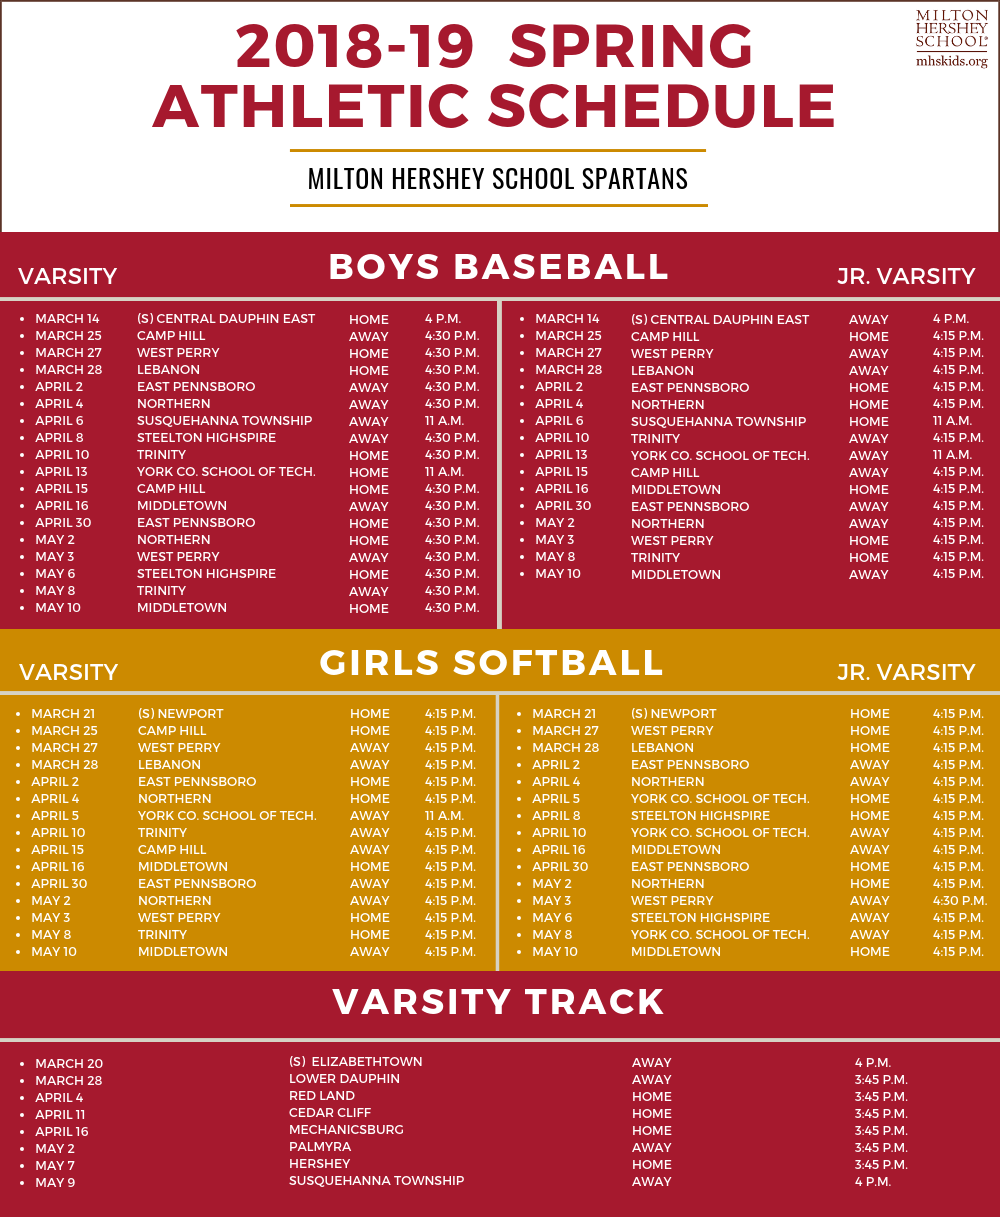 2018-19 Spring Athletic Schedule